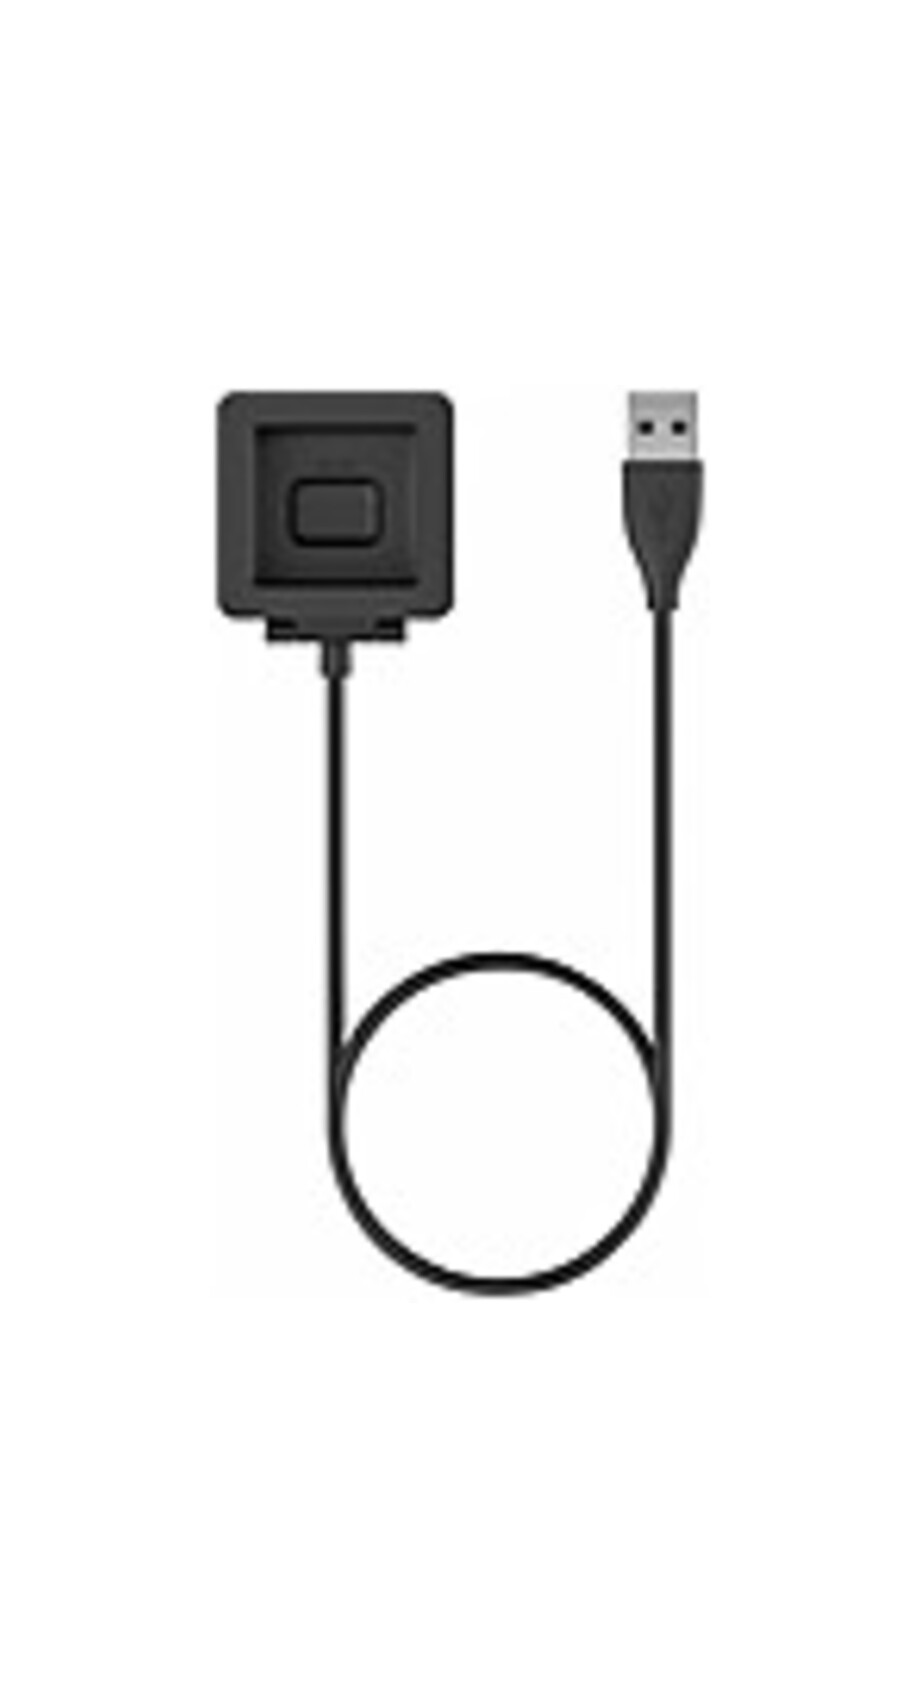 Fitbit Charging Cable - For Activity Tracker